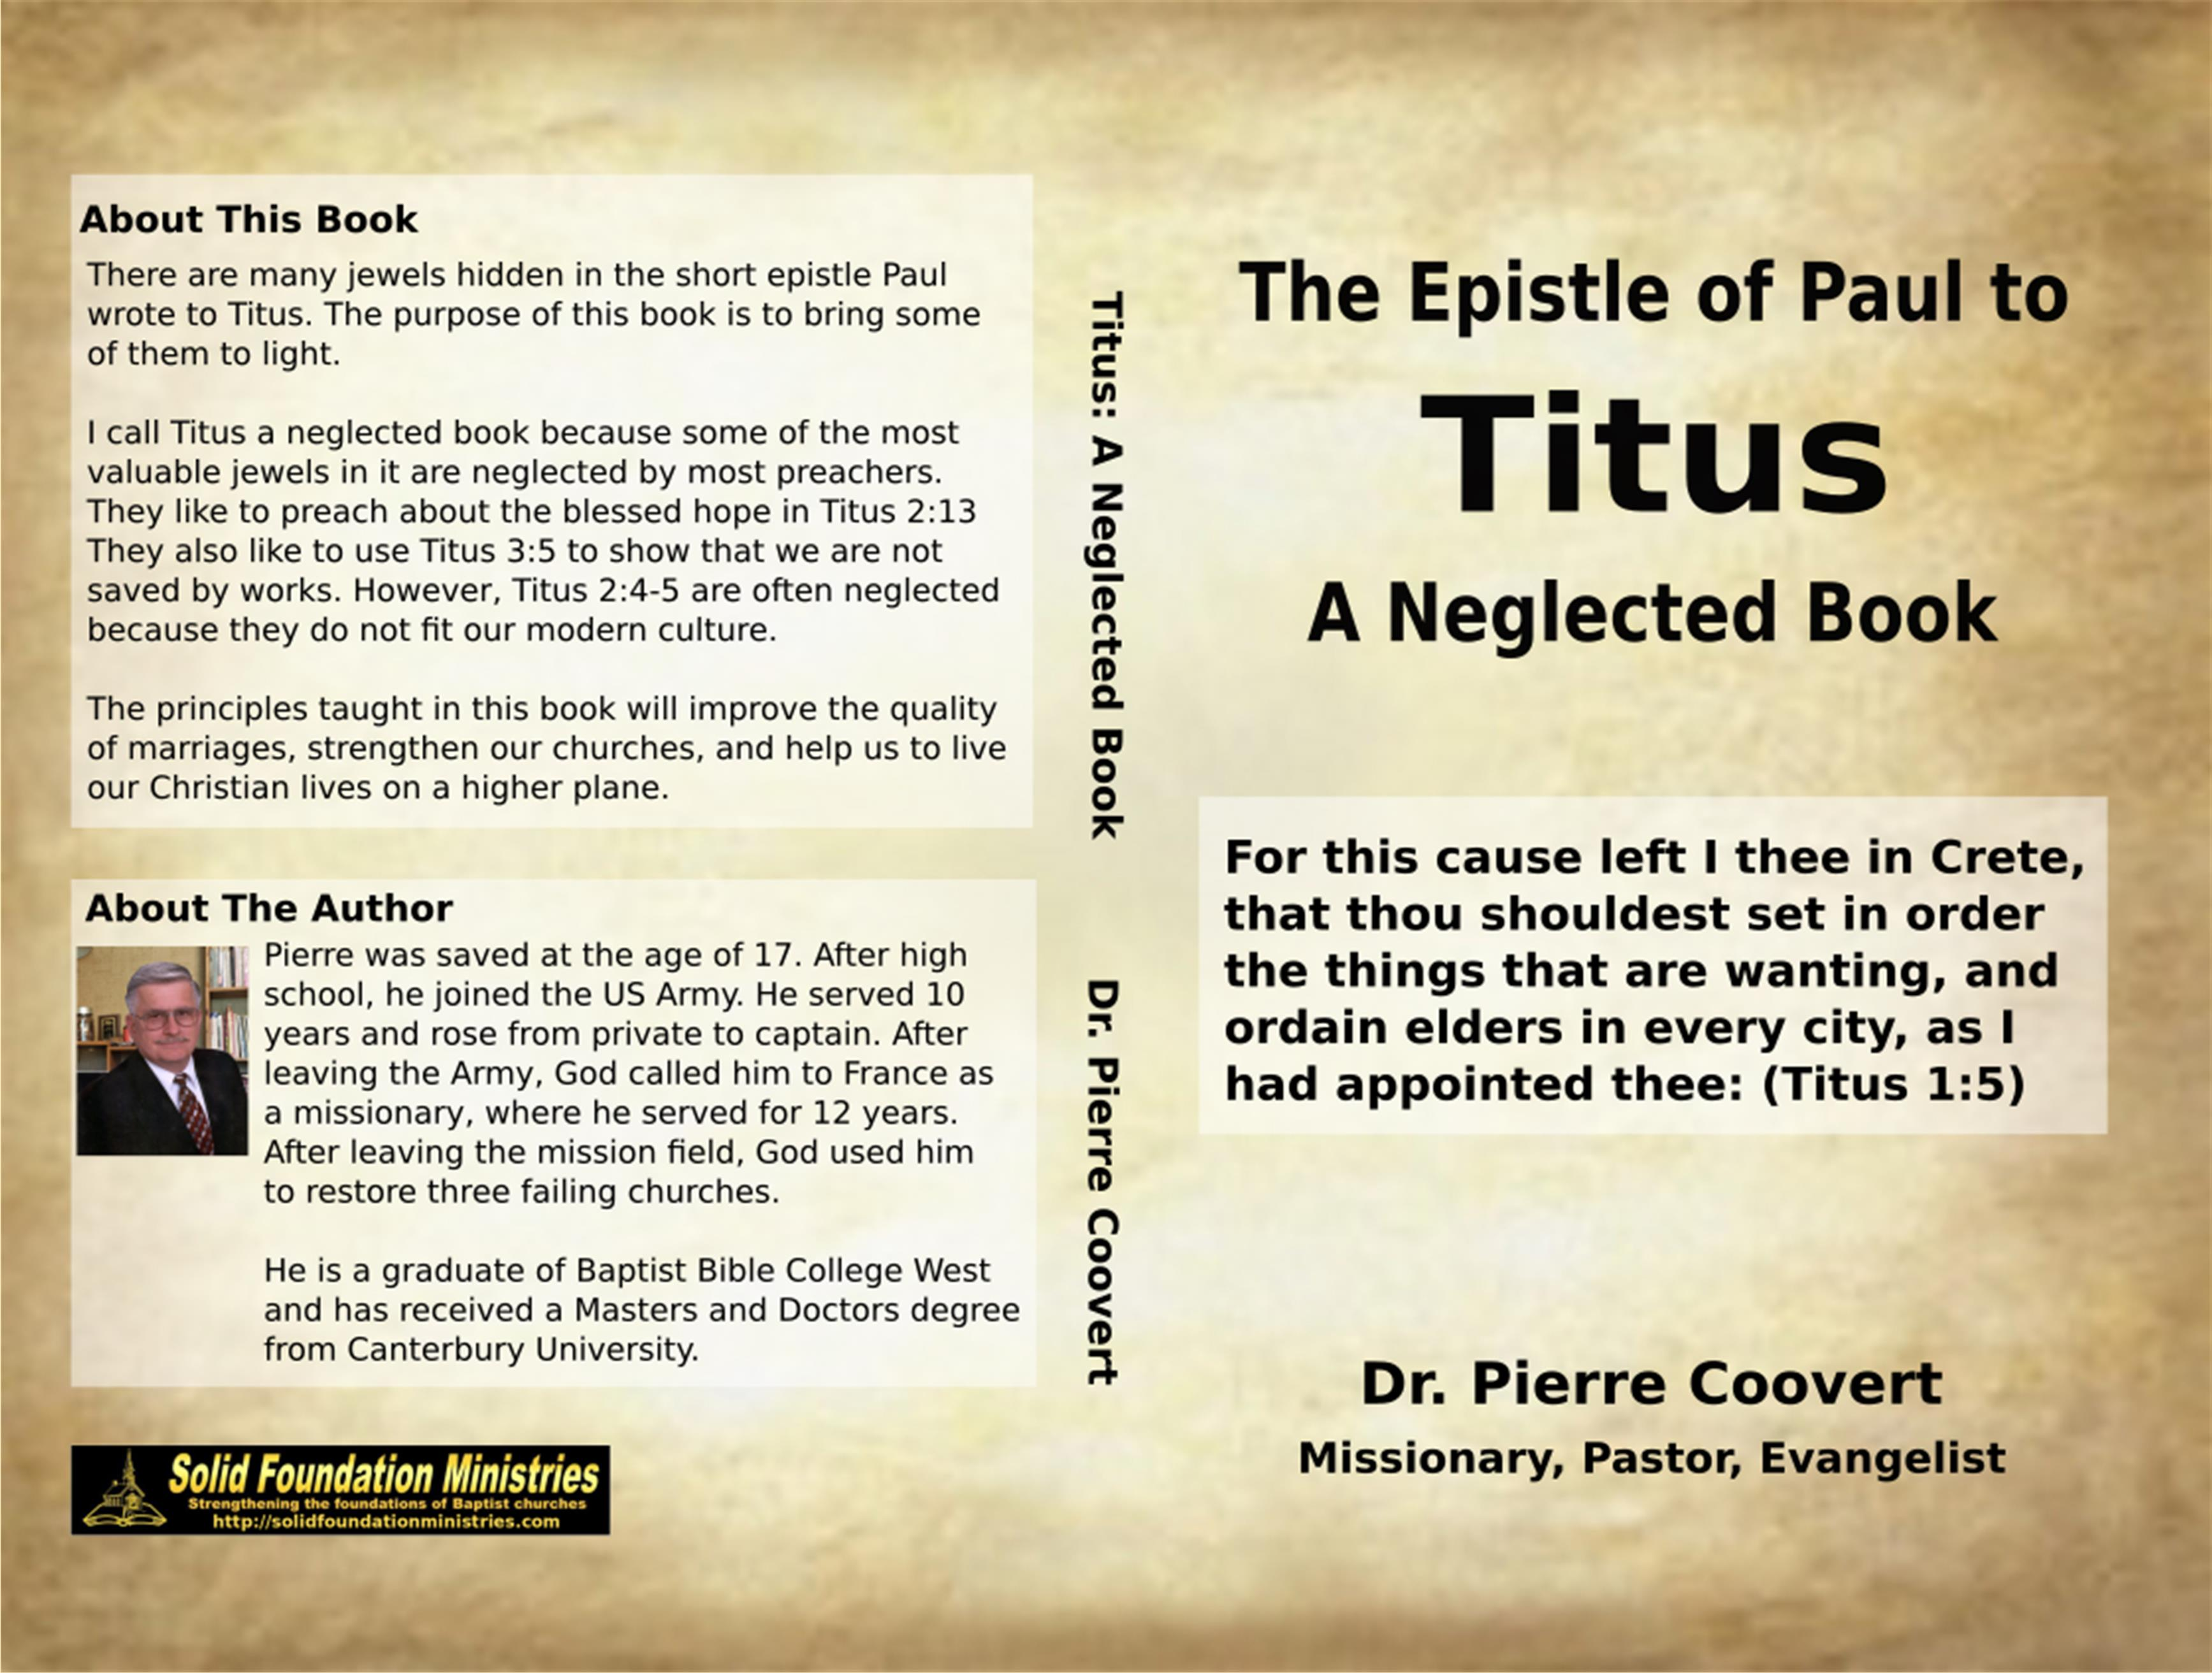 The Epistle of Paul to Titus cover image